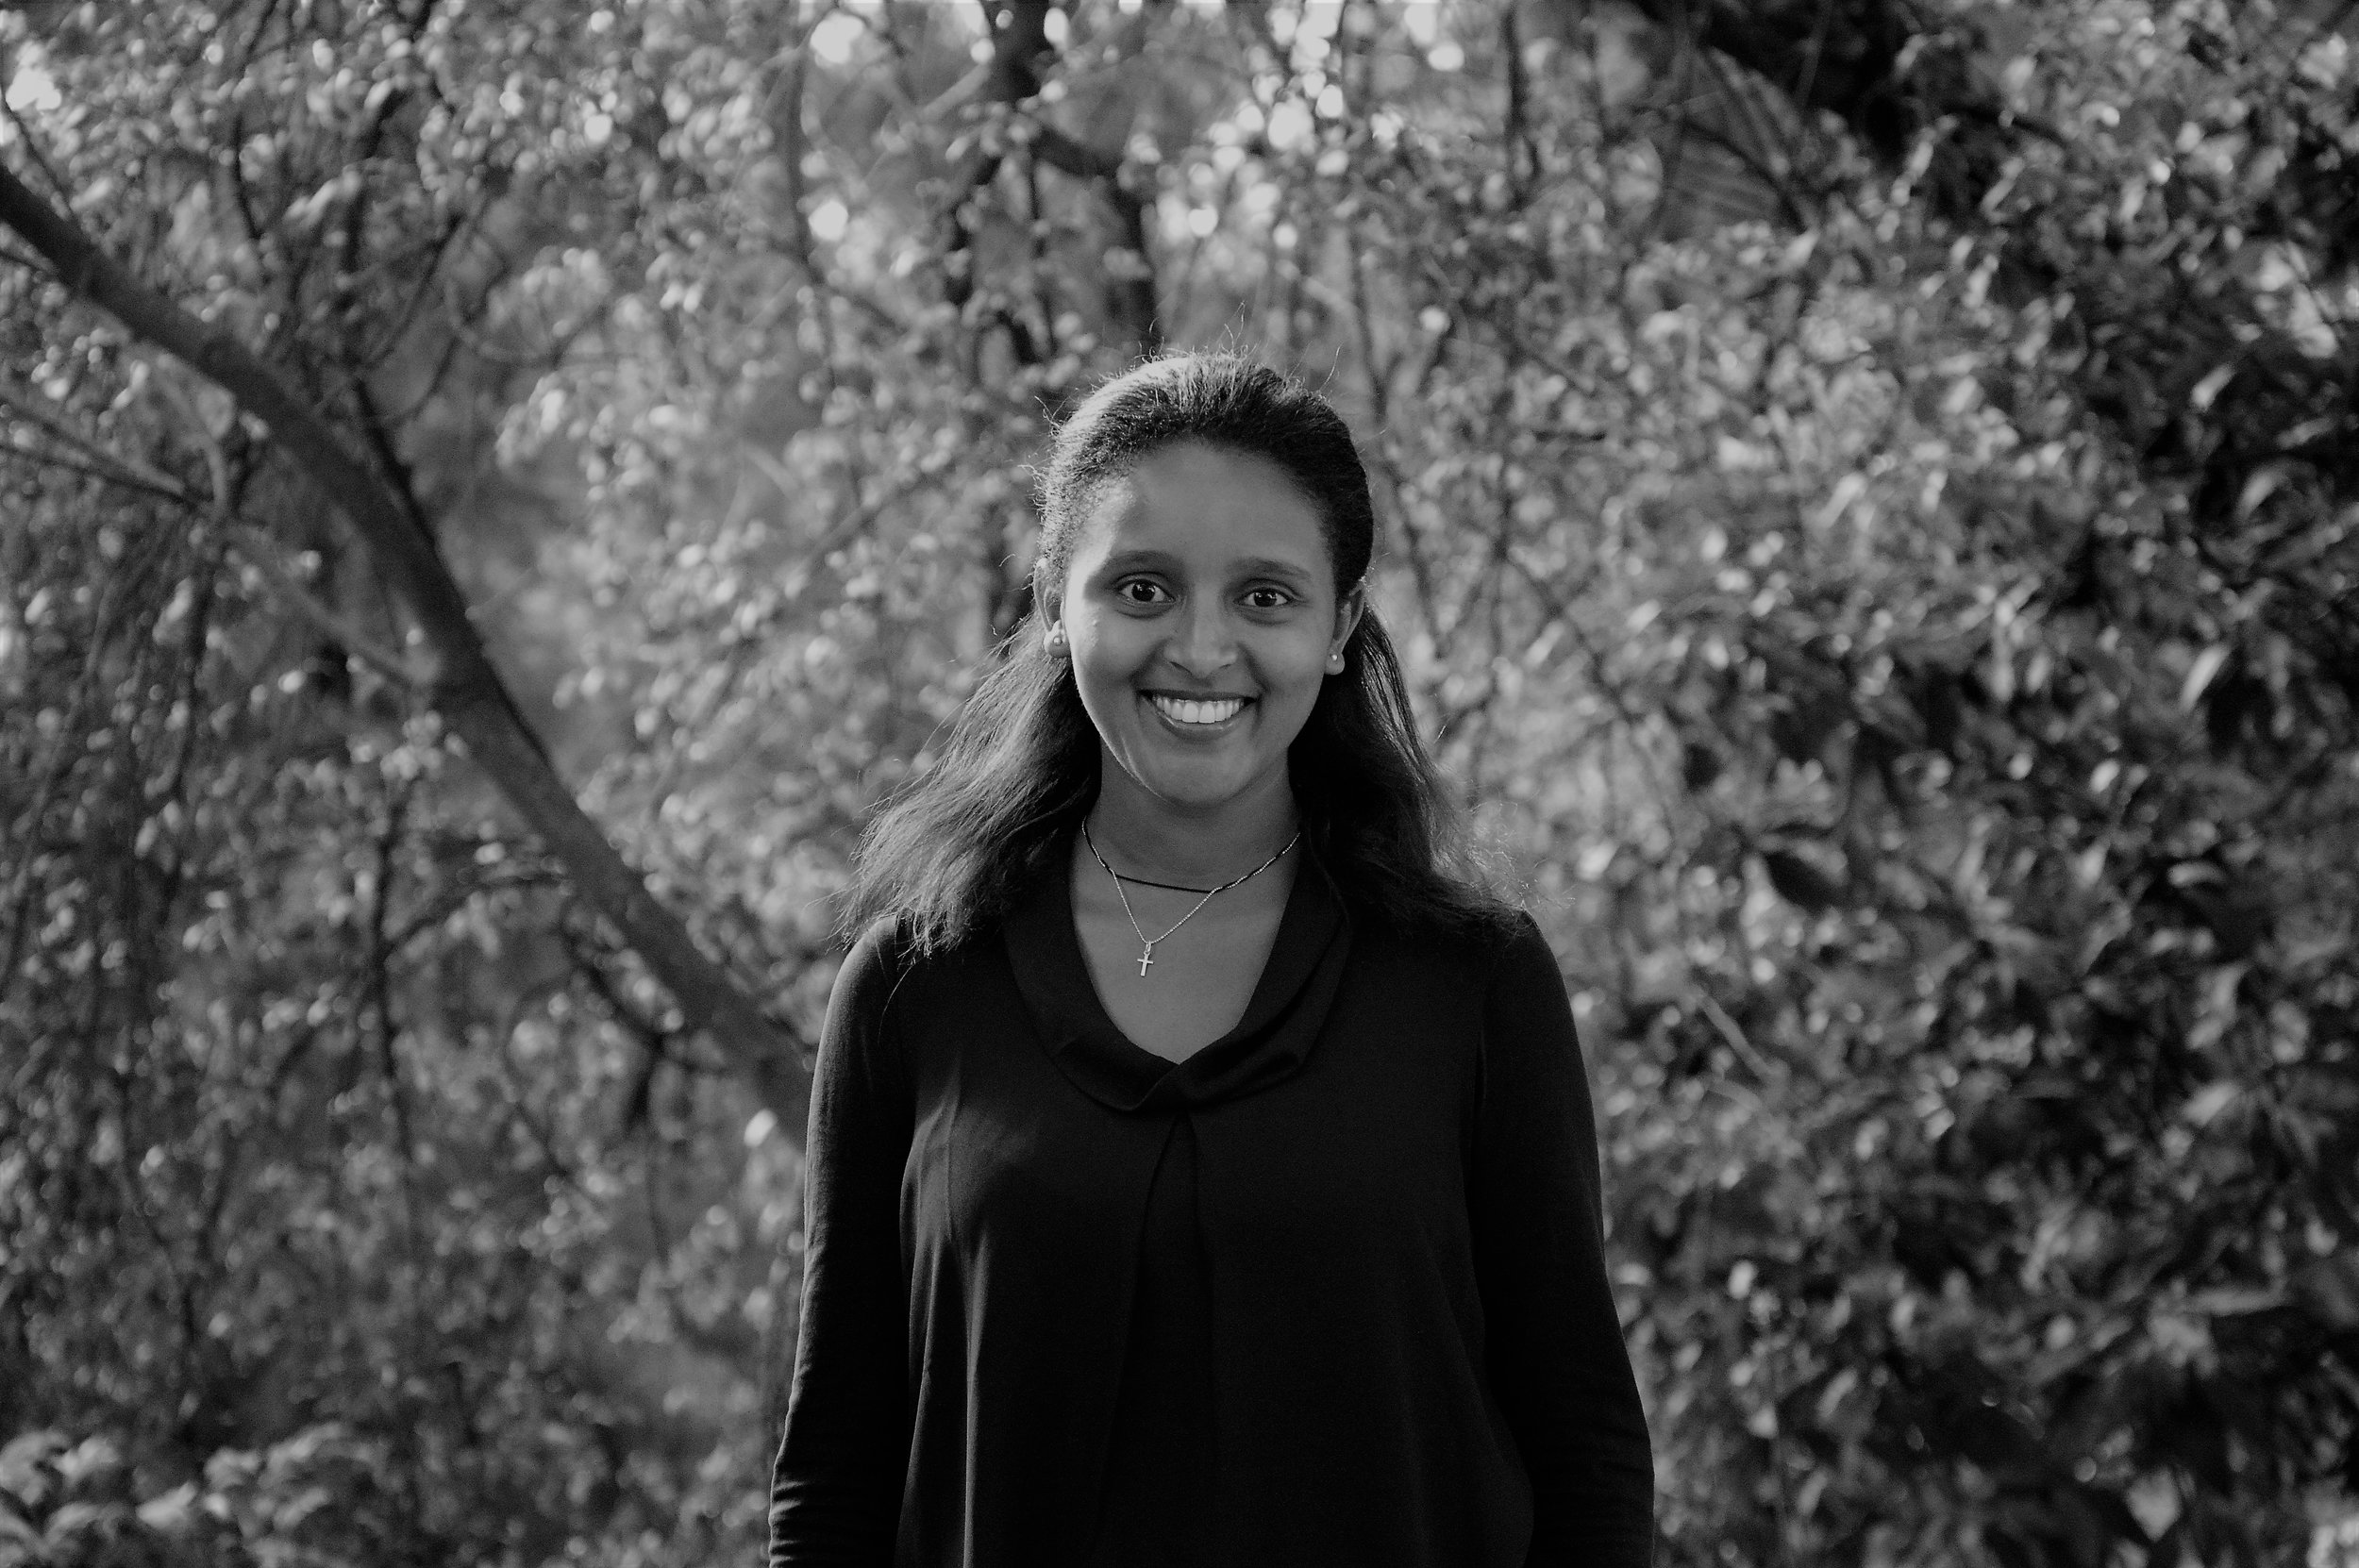 Hiwot Tadesse, Agricultural value chain facilitator, hiwot@resiliencebv.com,  https://www.linkedin.com/in/hiwottadesse/